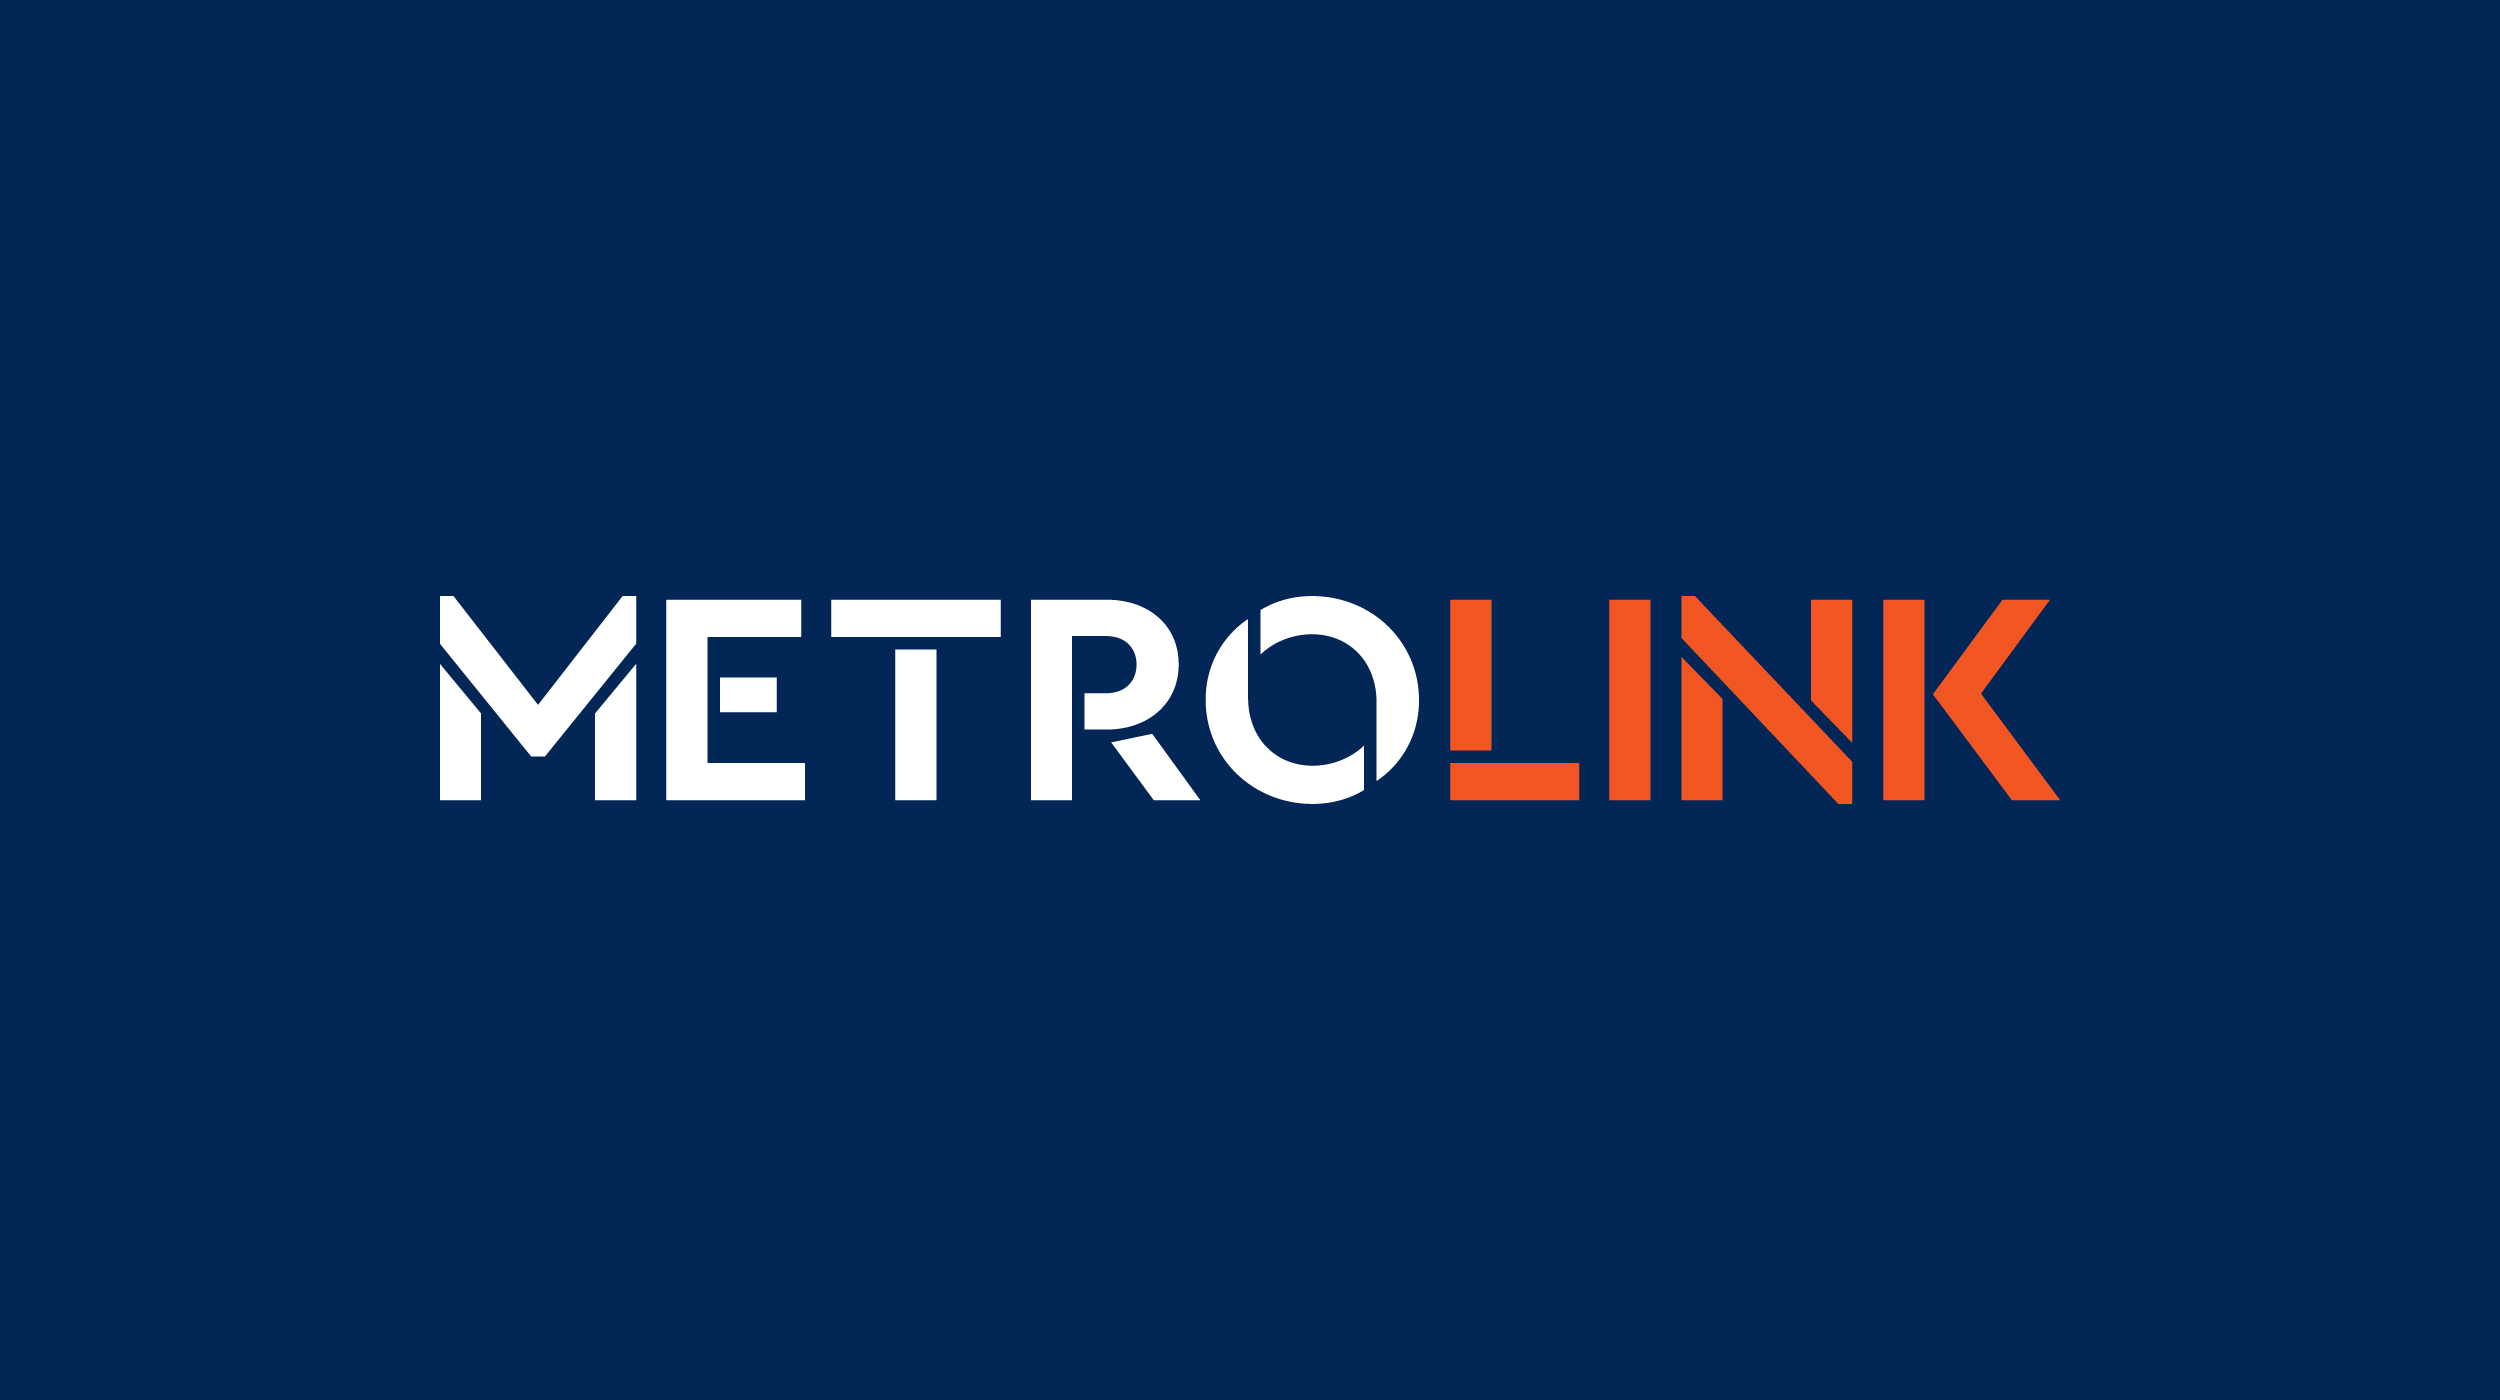 Cover image: MetroLink